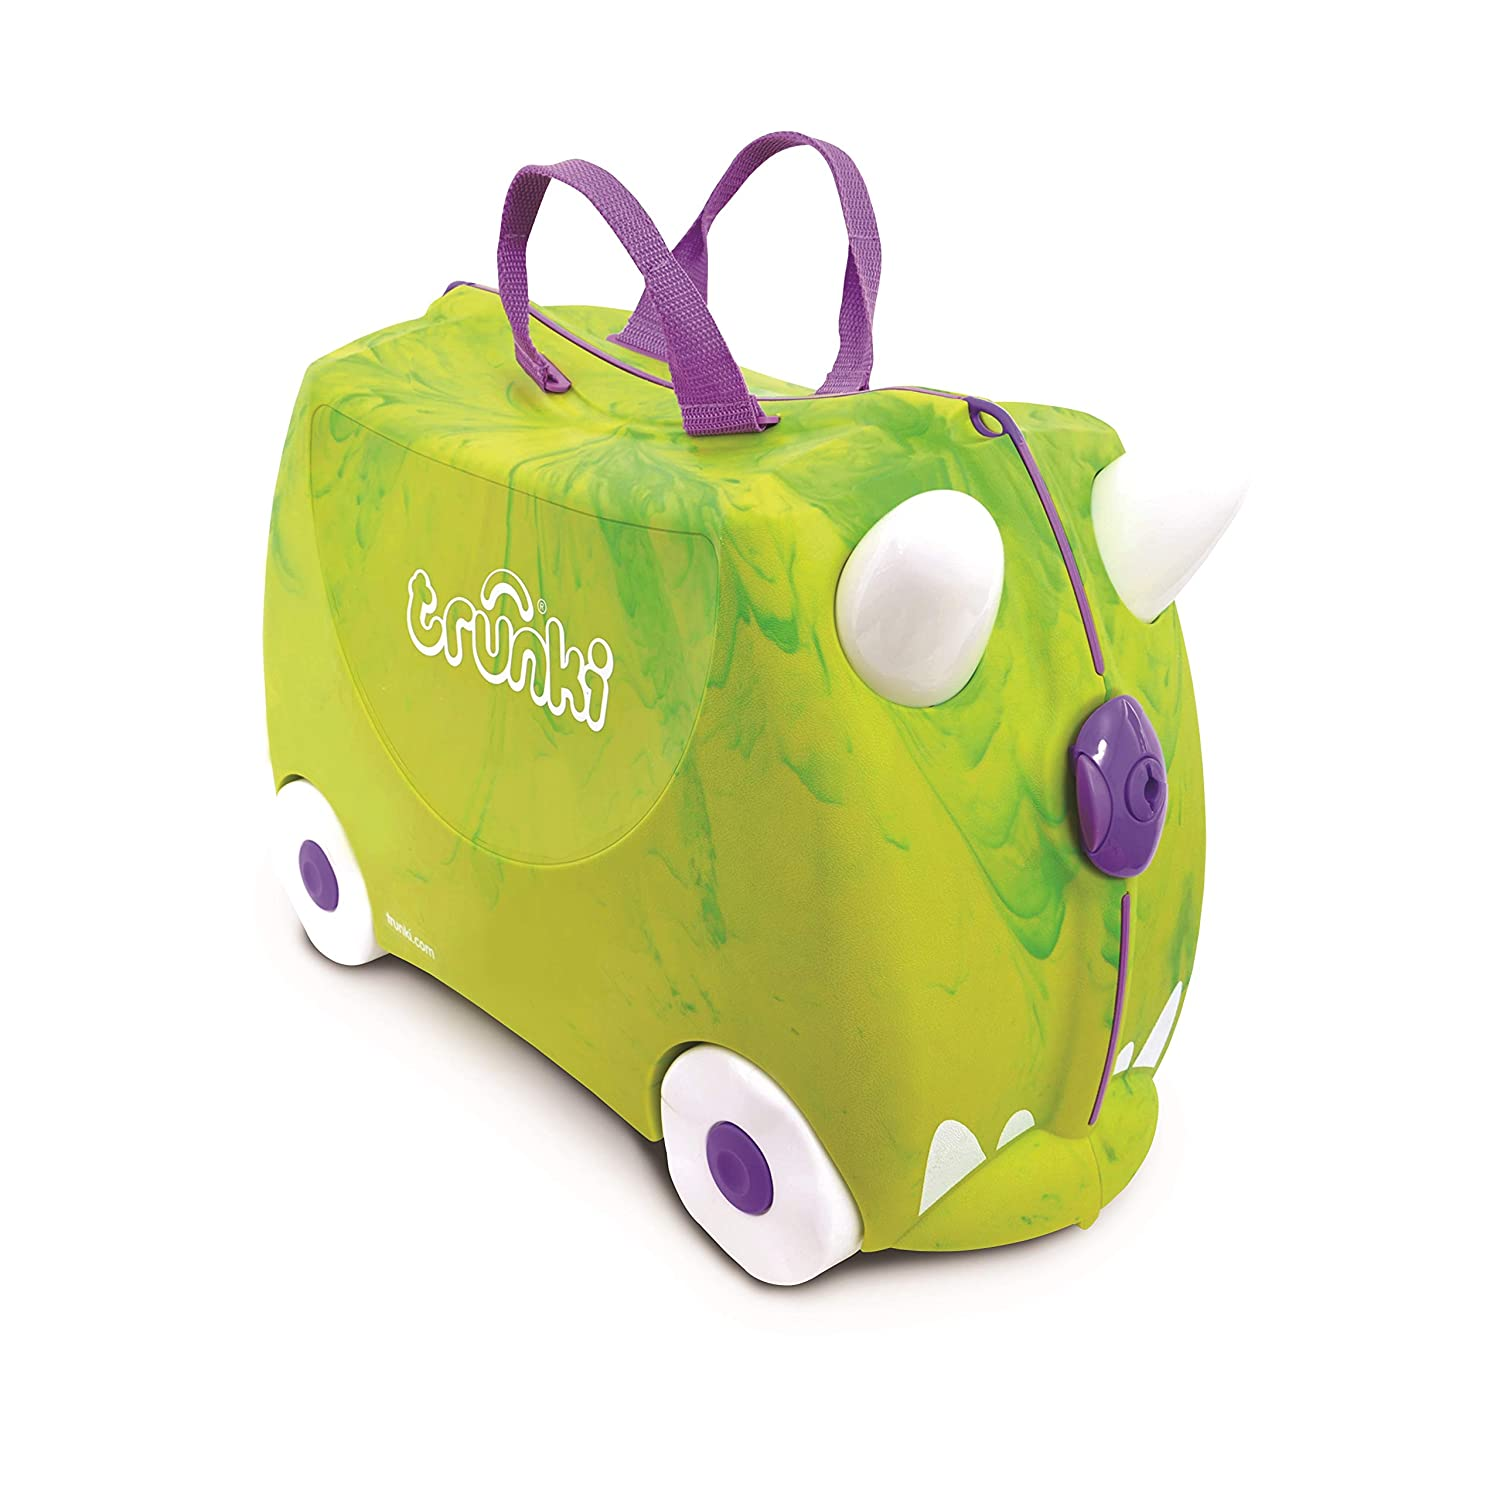 Amazon.com: Trunki Original Kids Ride-On Suitcase and Carry-On Luggage - Trunkisauras Rex (Green): Baby